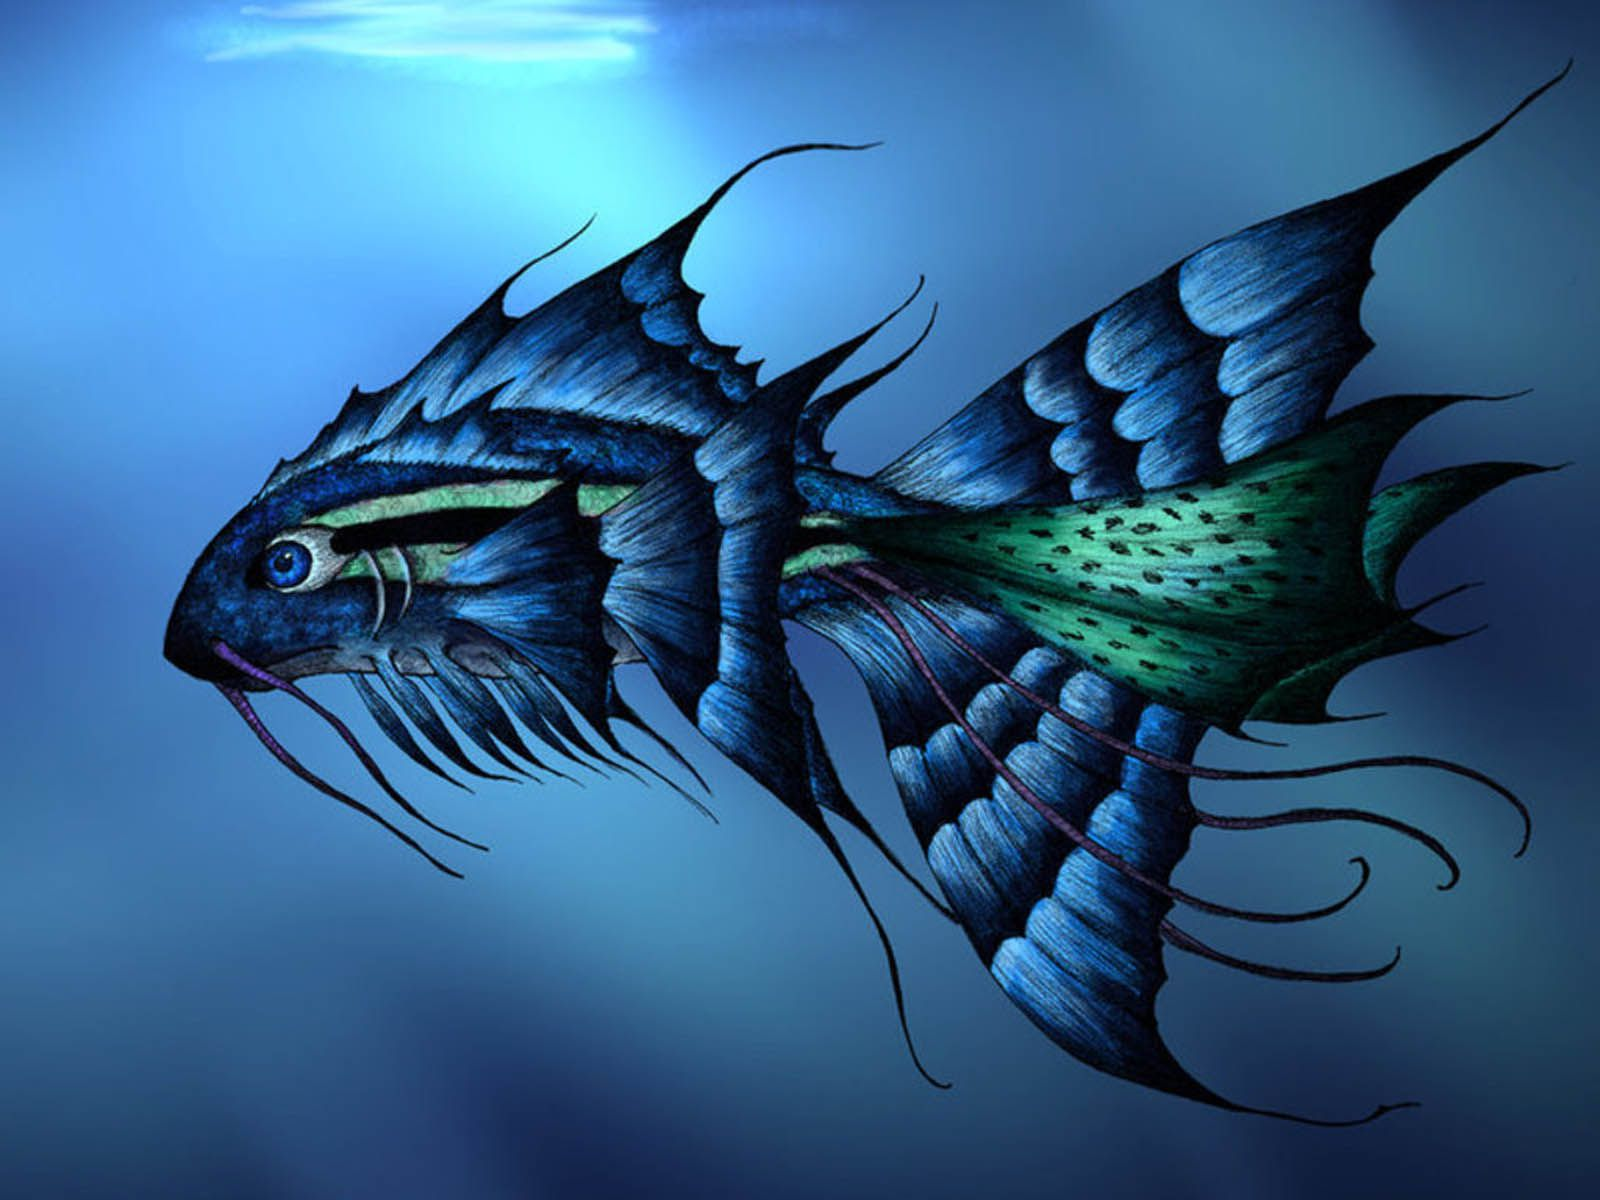 Live fish wallpaper for desktop download 33 wallpapers for Live to fish